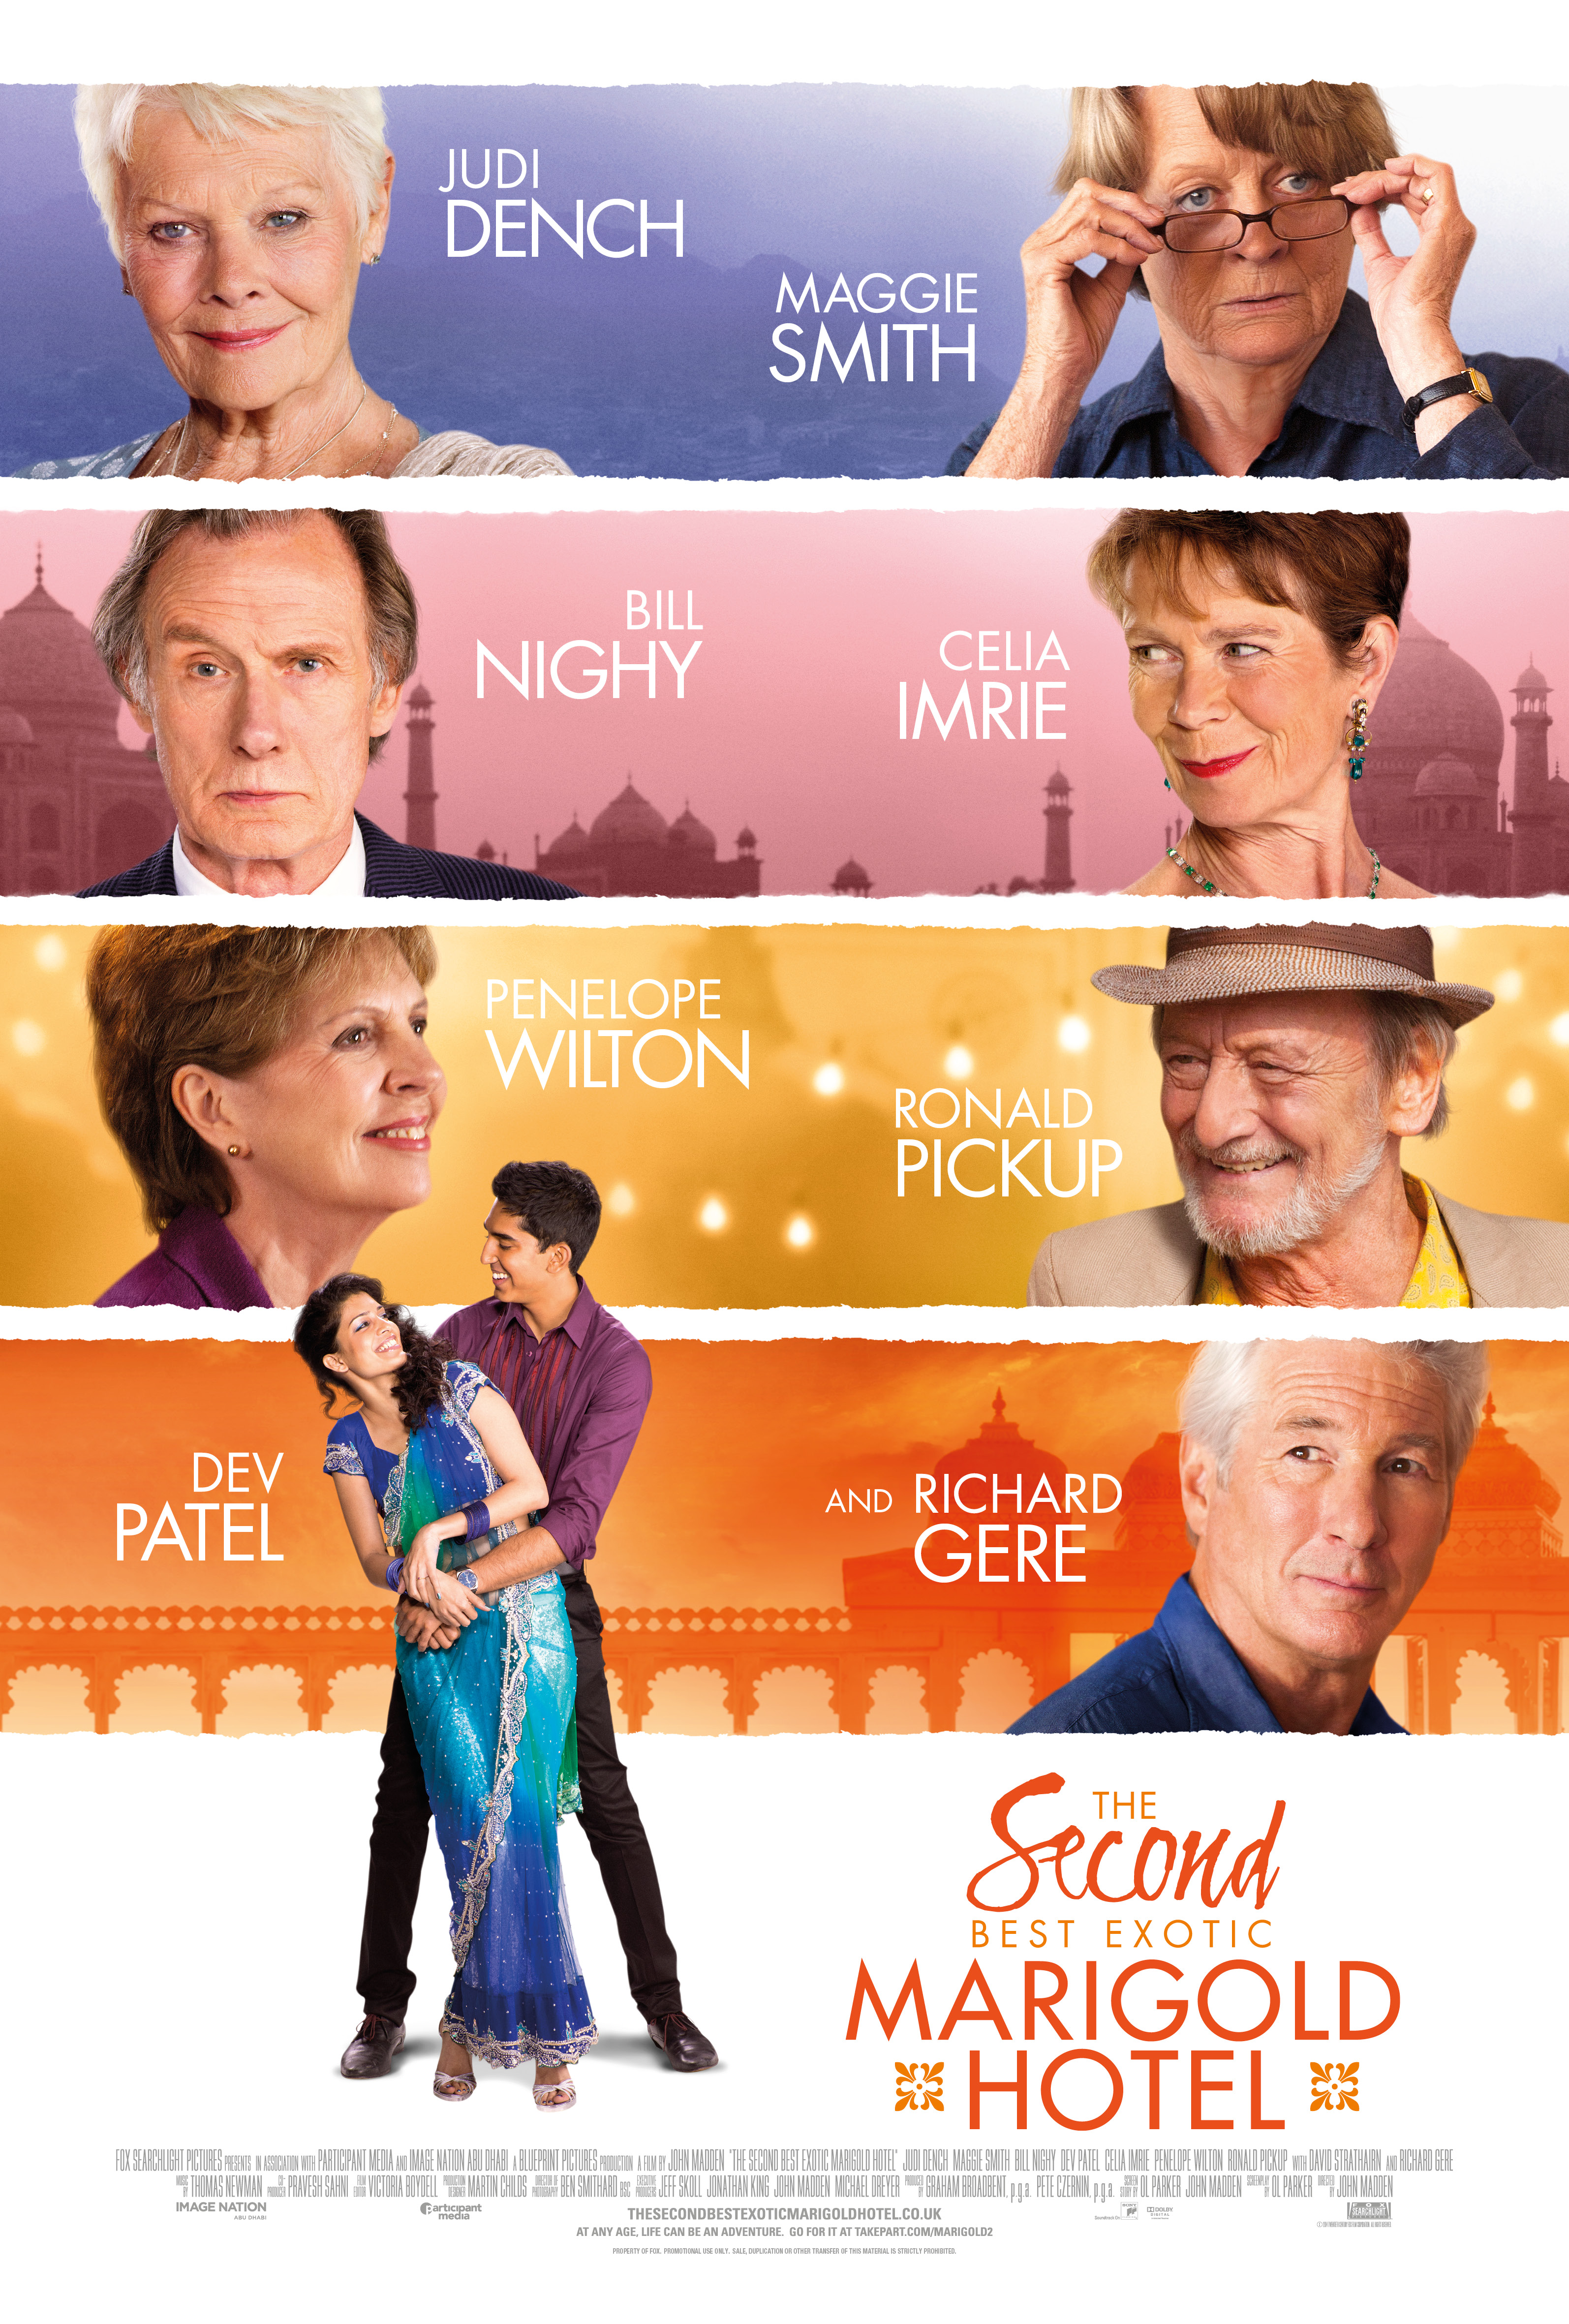 the second best exotic marigold hotel - Yellow Hotel 2015